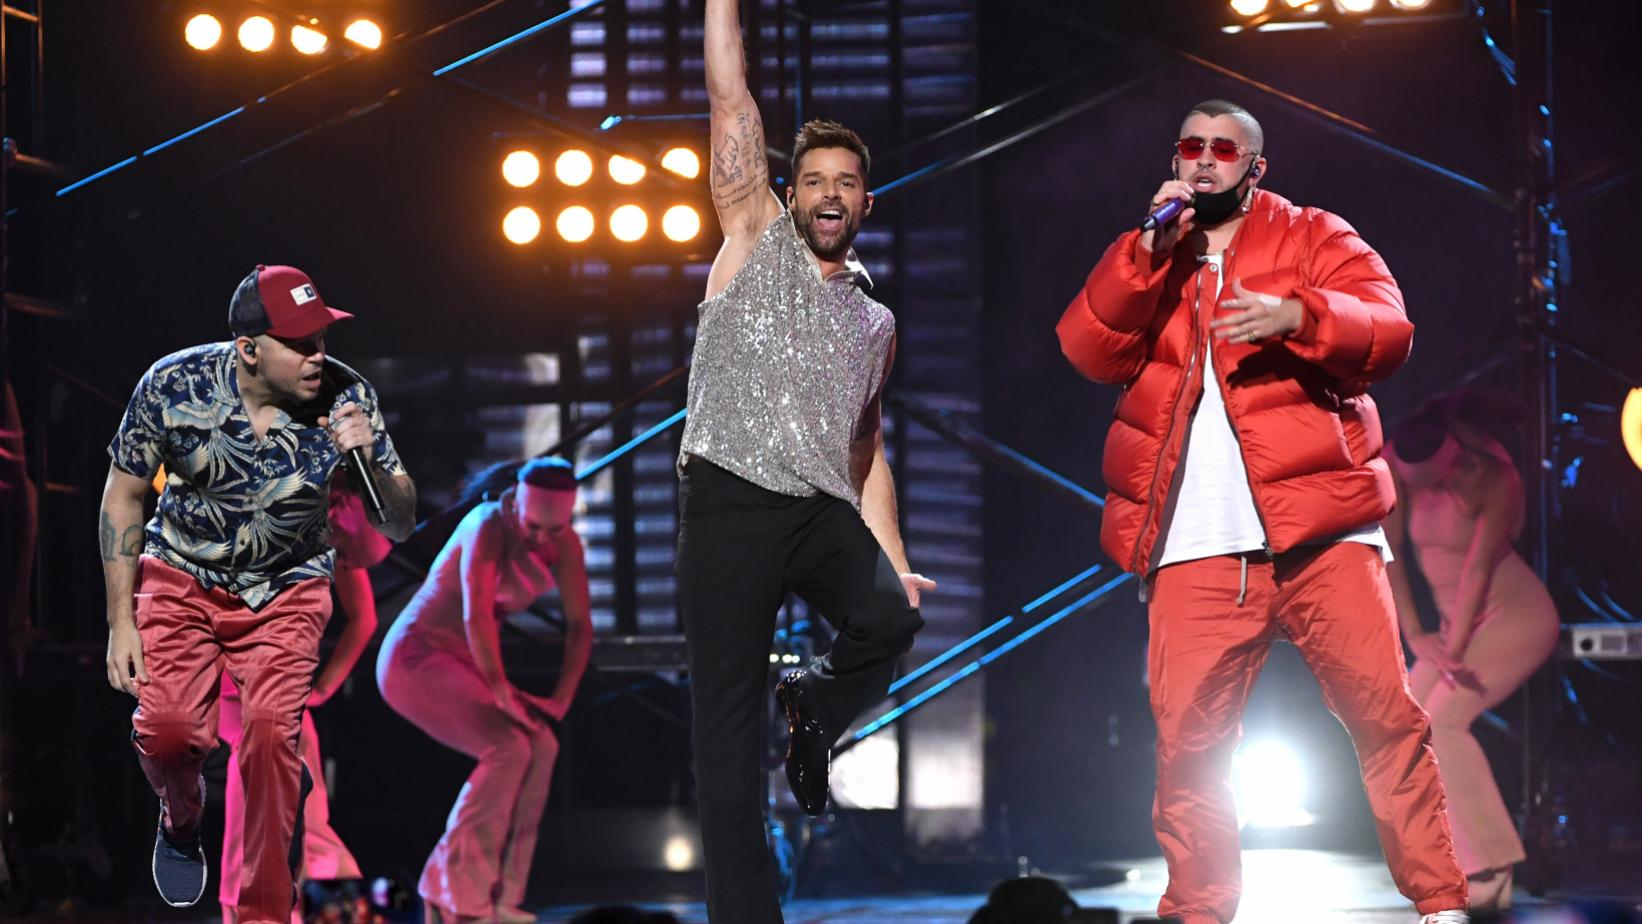 Residente, Ricky Martin & Bad Bunny perform at the 2019 Latin GRAMMYs